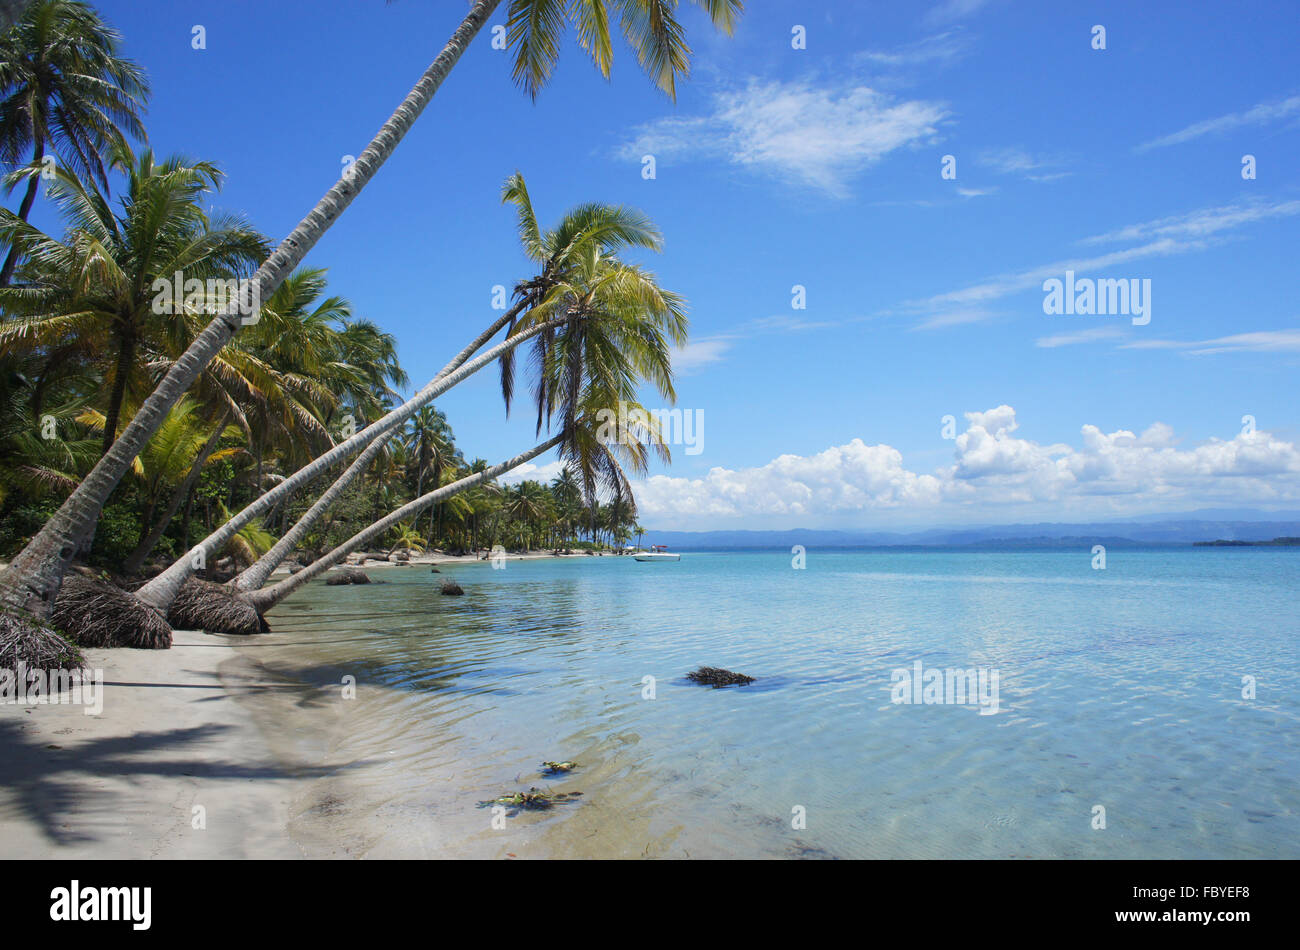 perfect caribbean beach - Stock Image